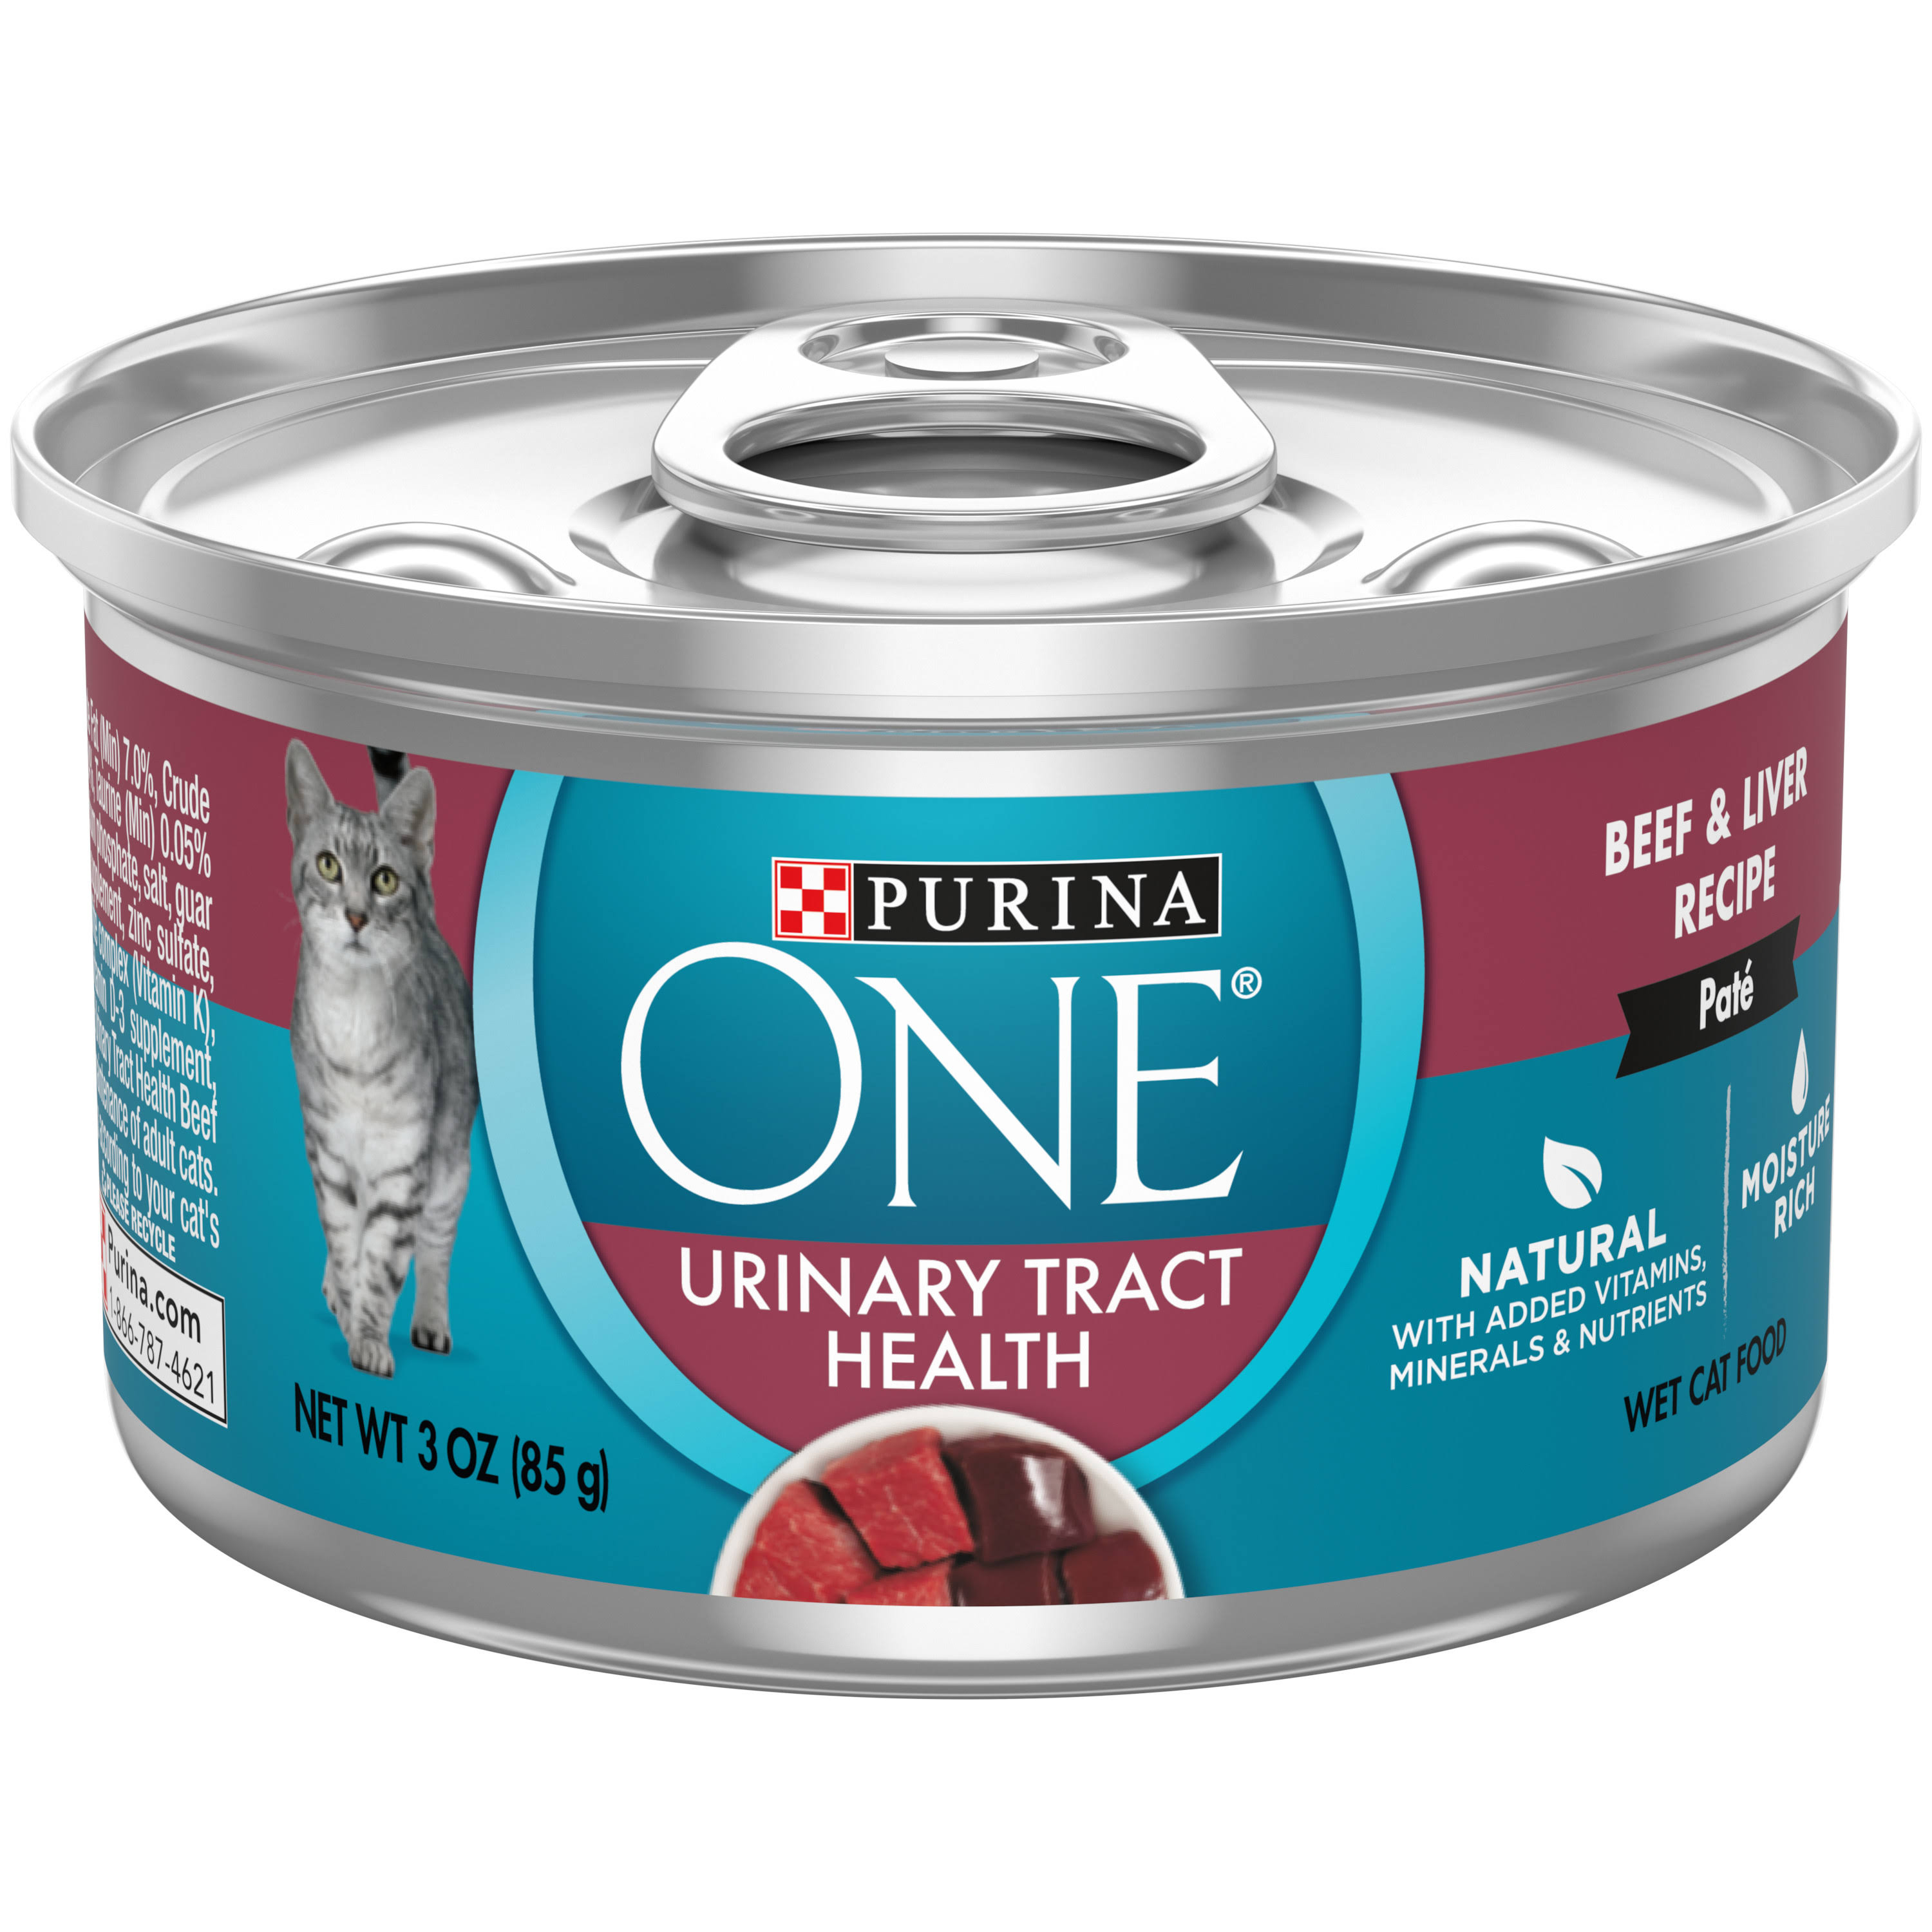 One Cat Food, Beef/Liver Recipe, Urinary Tract Health, Wet - 3 oz